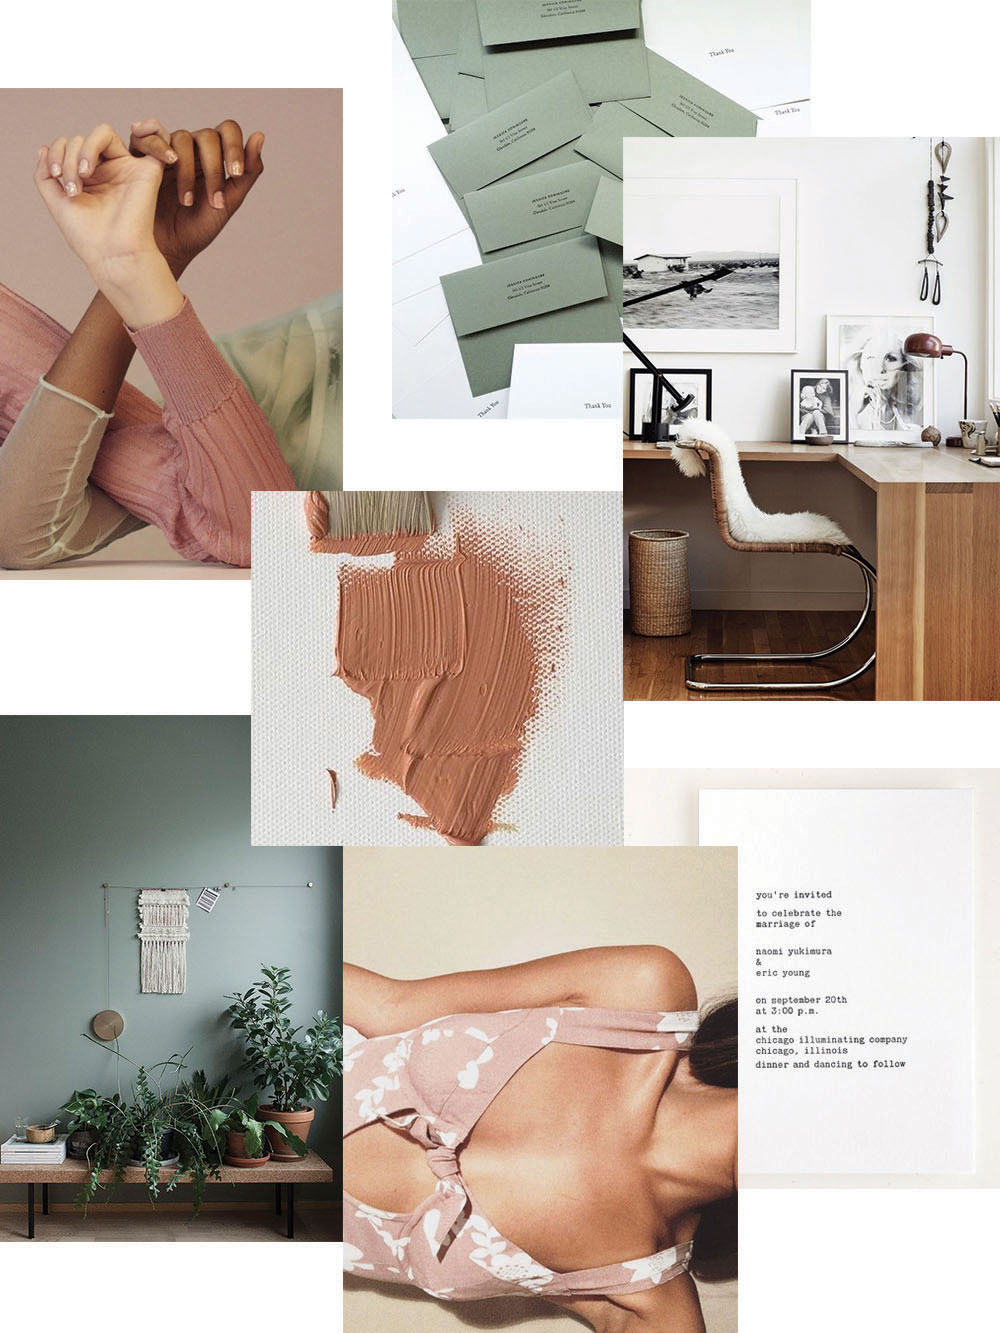 color combo: sage and dusty rose with skin tones